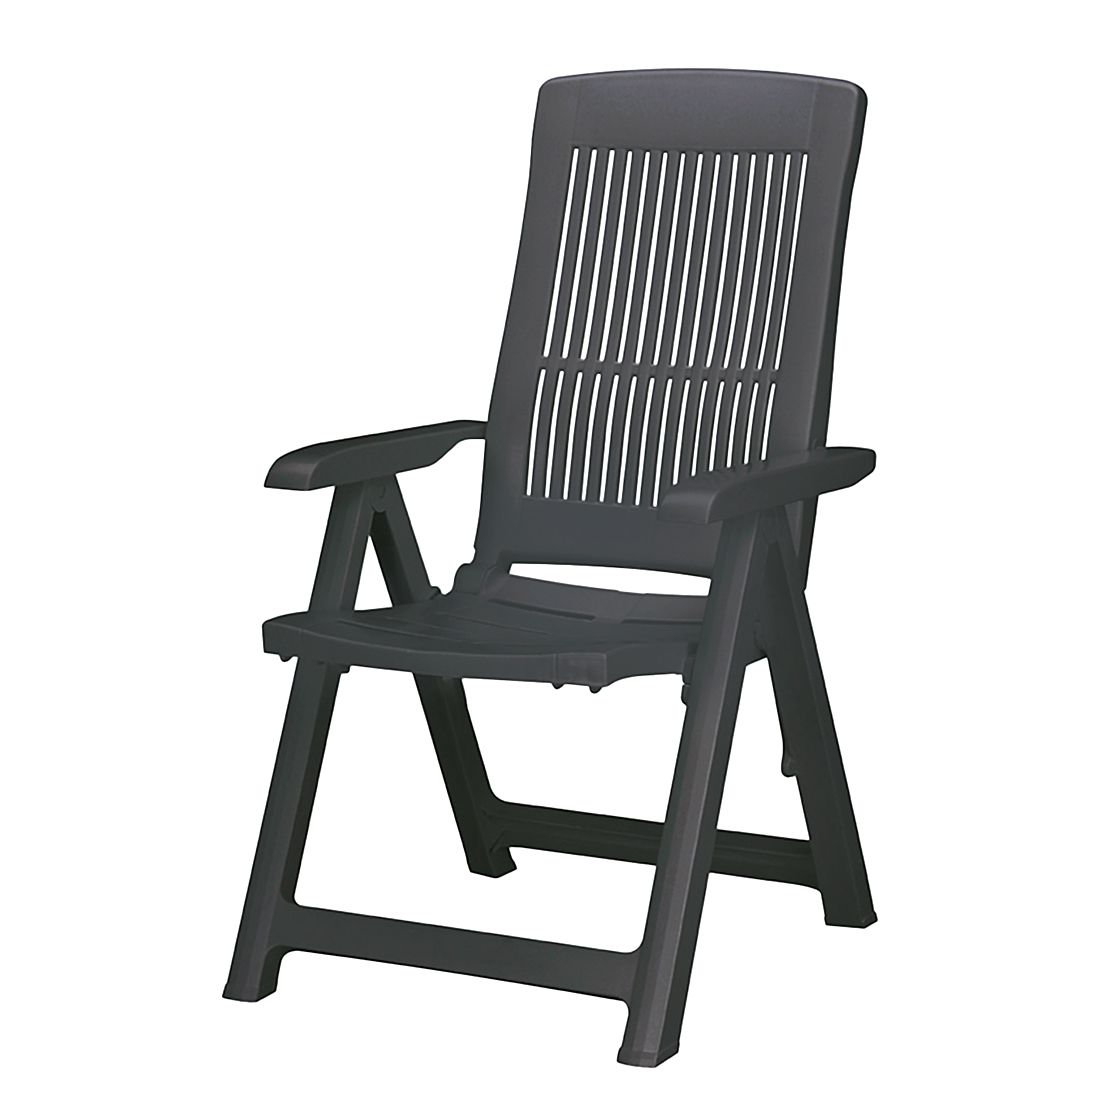 Home 24 - Fauteuil empilable florida - matériau synthétique - anthracite, best freizeitmöbel